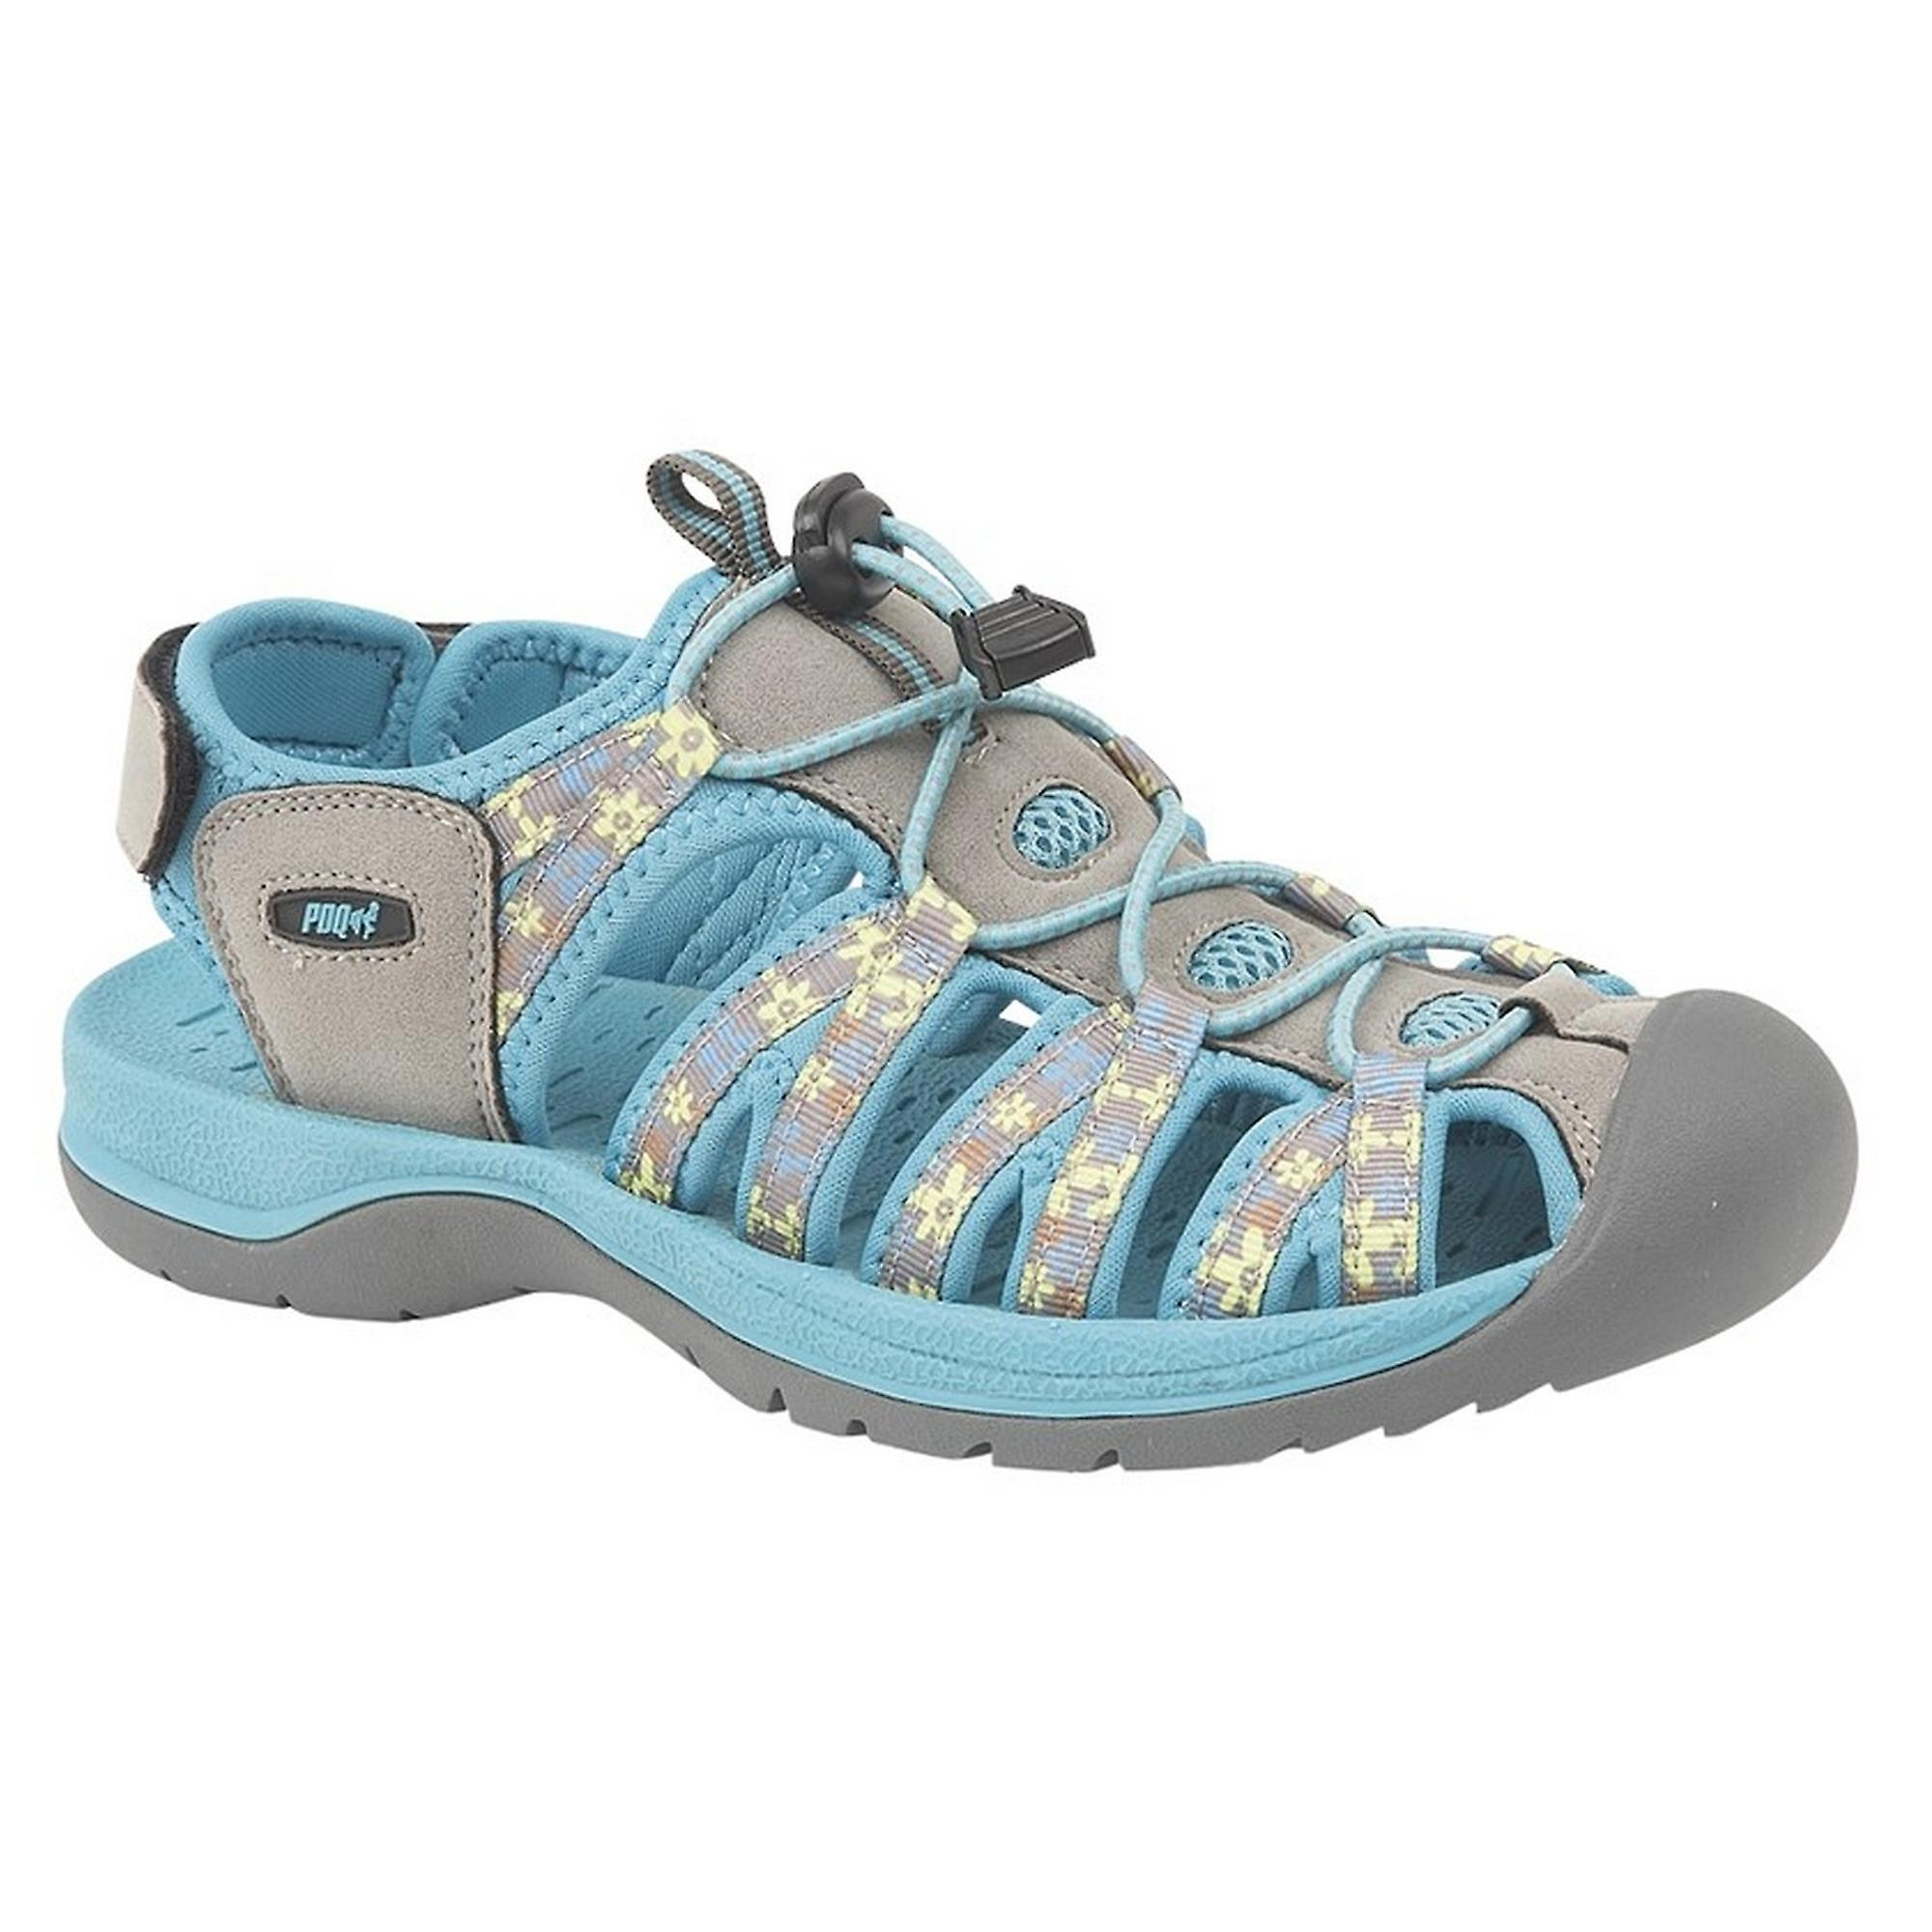 Print PDQ Ladies Sandals Sports Floral Superlight Womens Pg4rnWg1